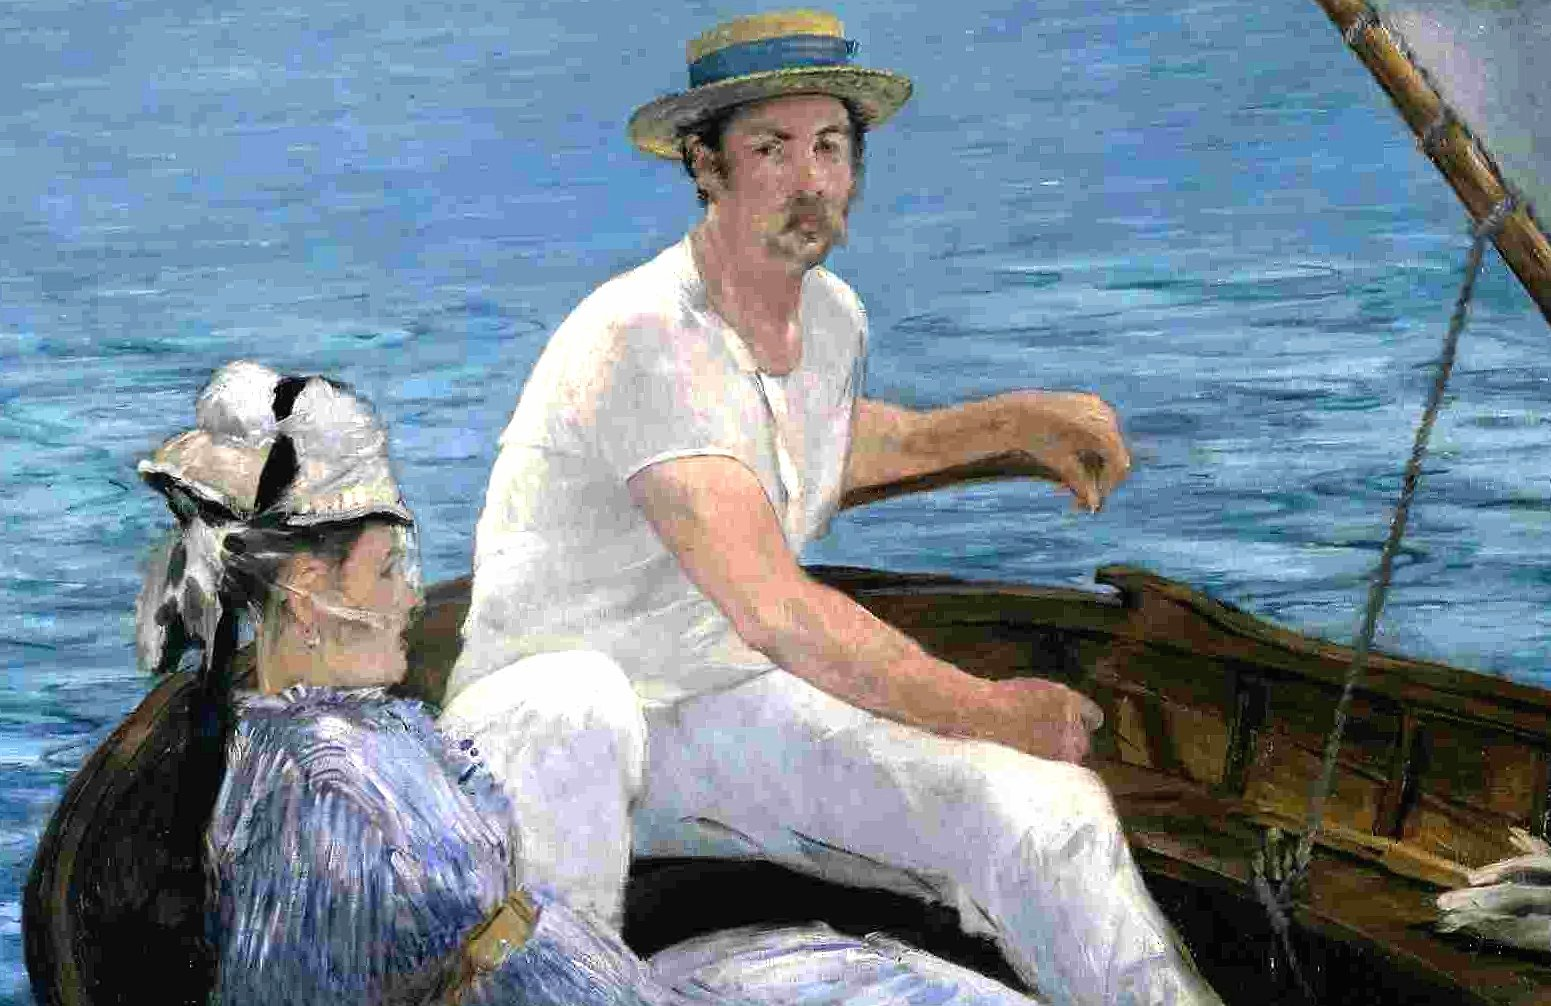 edouard manet on a boat wallpapers HD quality